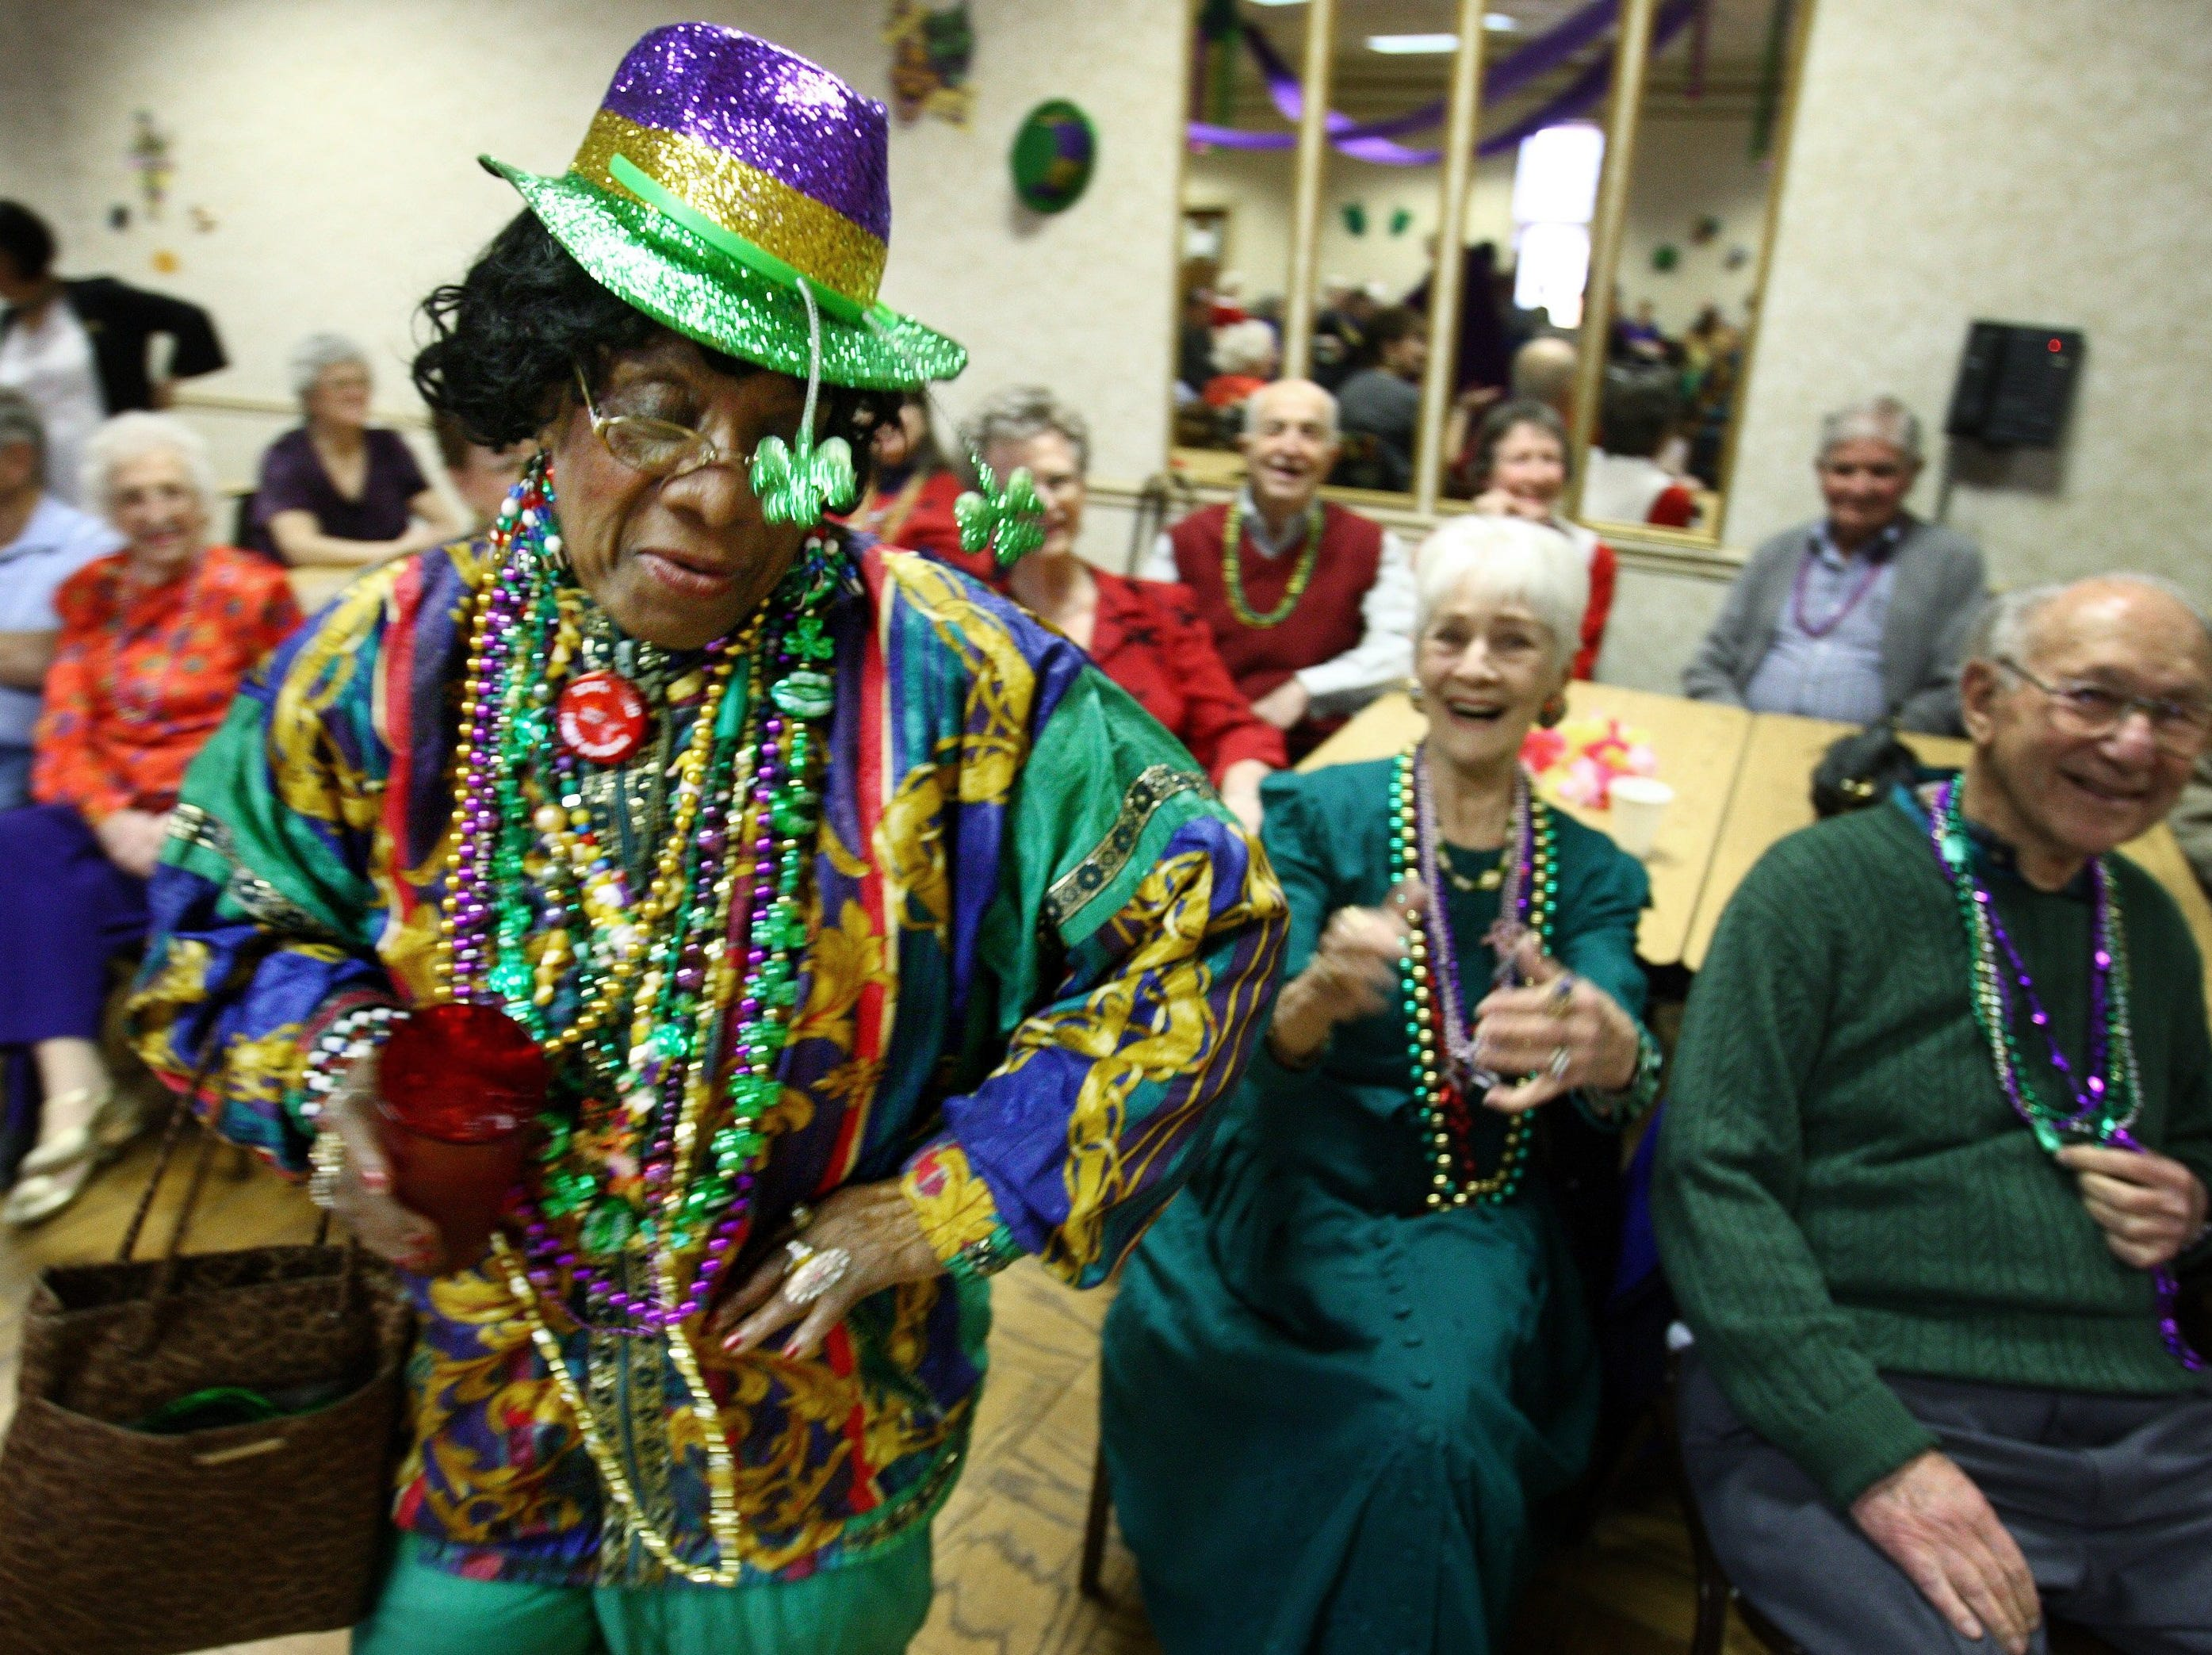 Tue 16 Feb 10 (mbmardi1) Photo by Mike Brown. Vennie McIntosh, 79, grooves to the sounds of the Jim Mahannah Band during a Mardi Gras celebration at the Frayser-Raleigh Senior Center. More than 150 seniors from the Lewis, Orange Mound and Frayser-Raleigh senior centers gathered to celebrate Fat Tuesday together with dancing and cake.